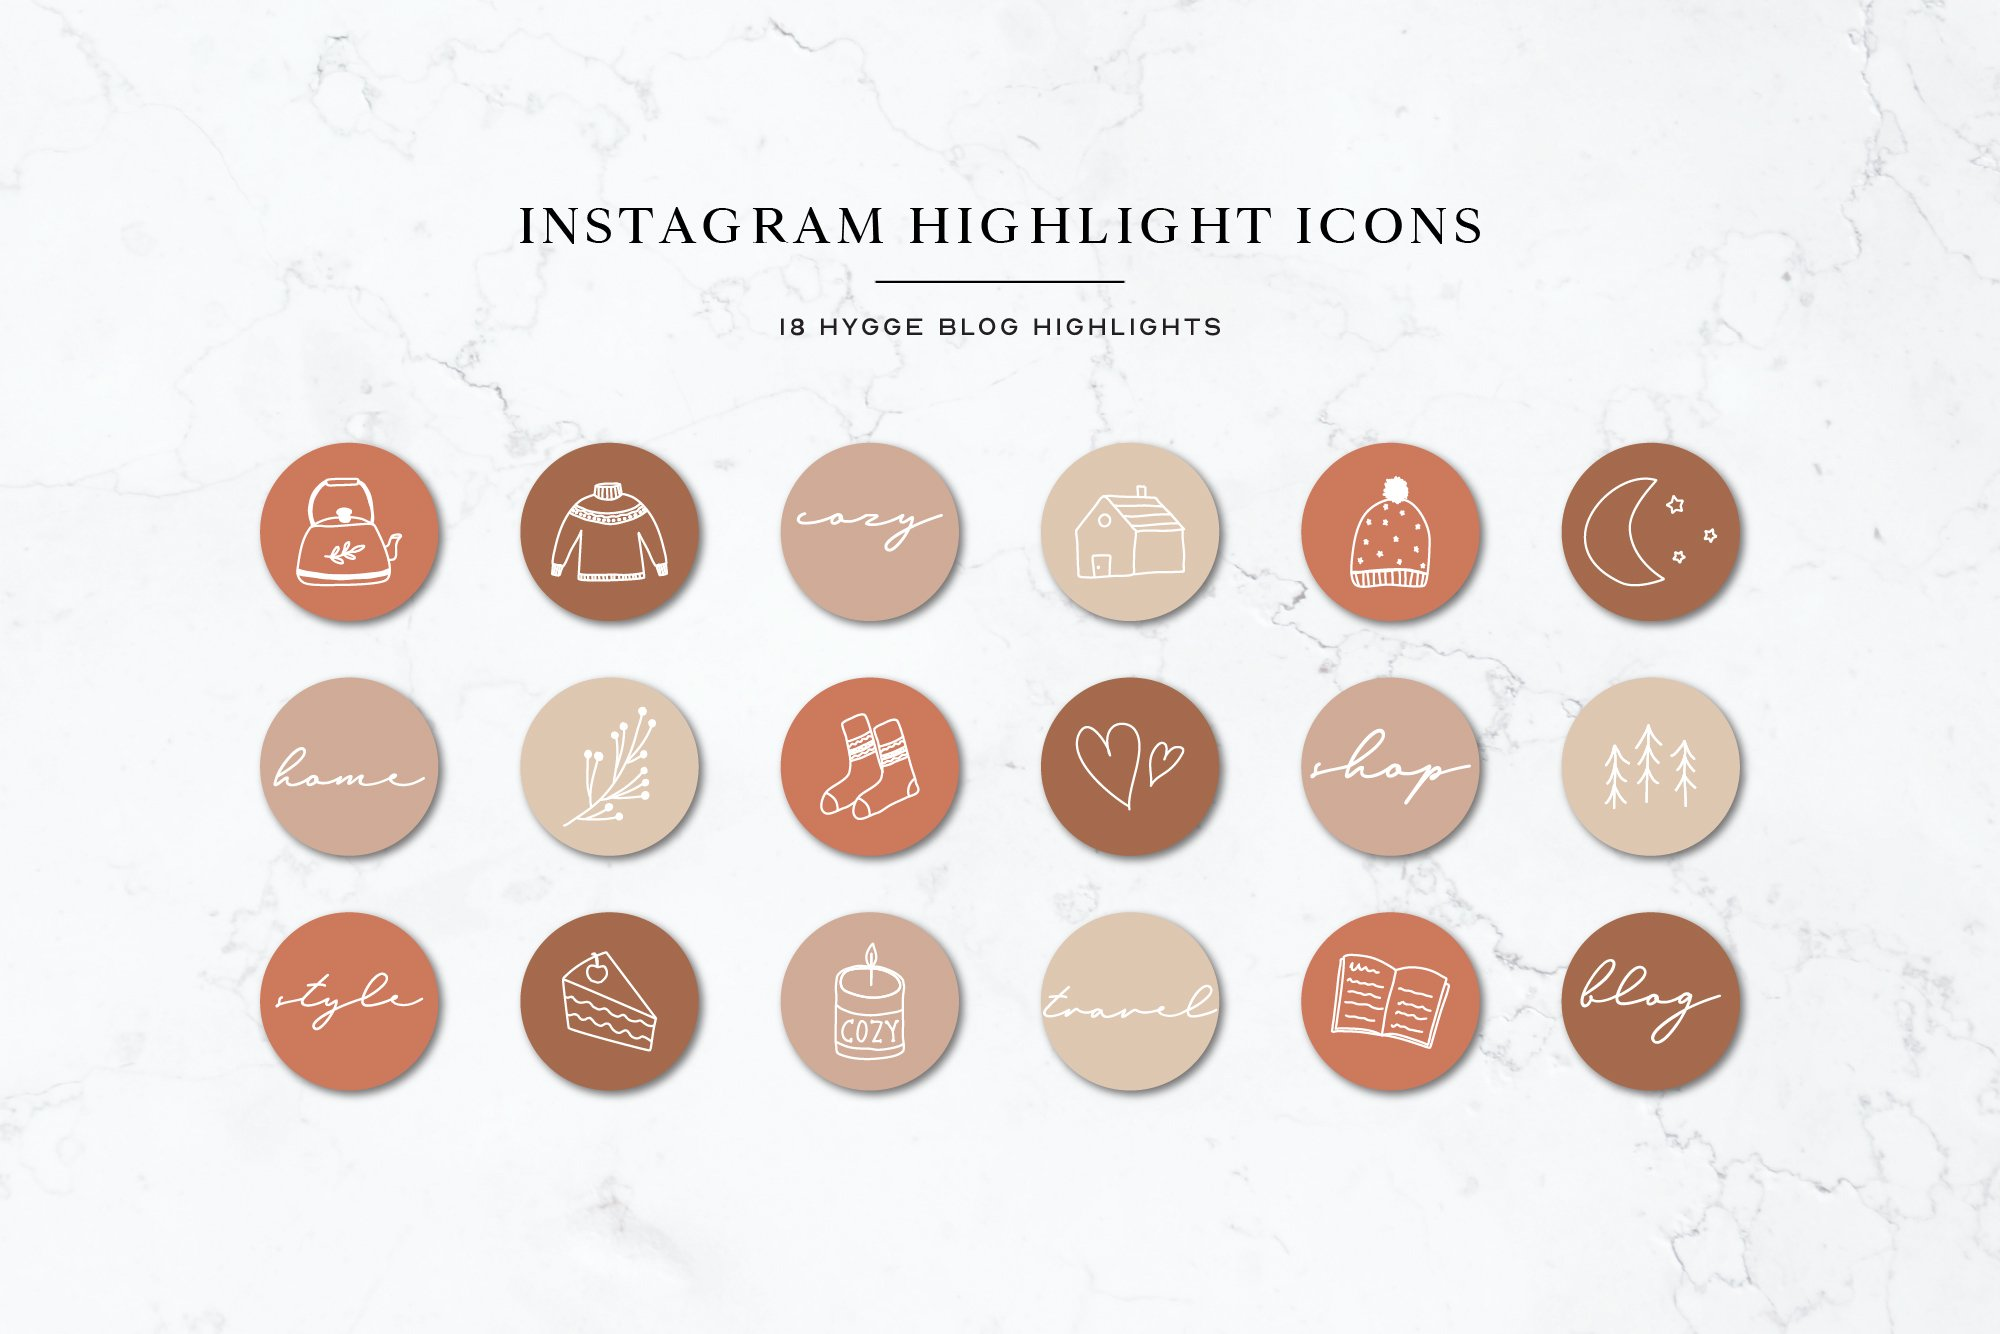 Hygge Instagram Highlights Icons | Instagram Stories example image 2